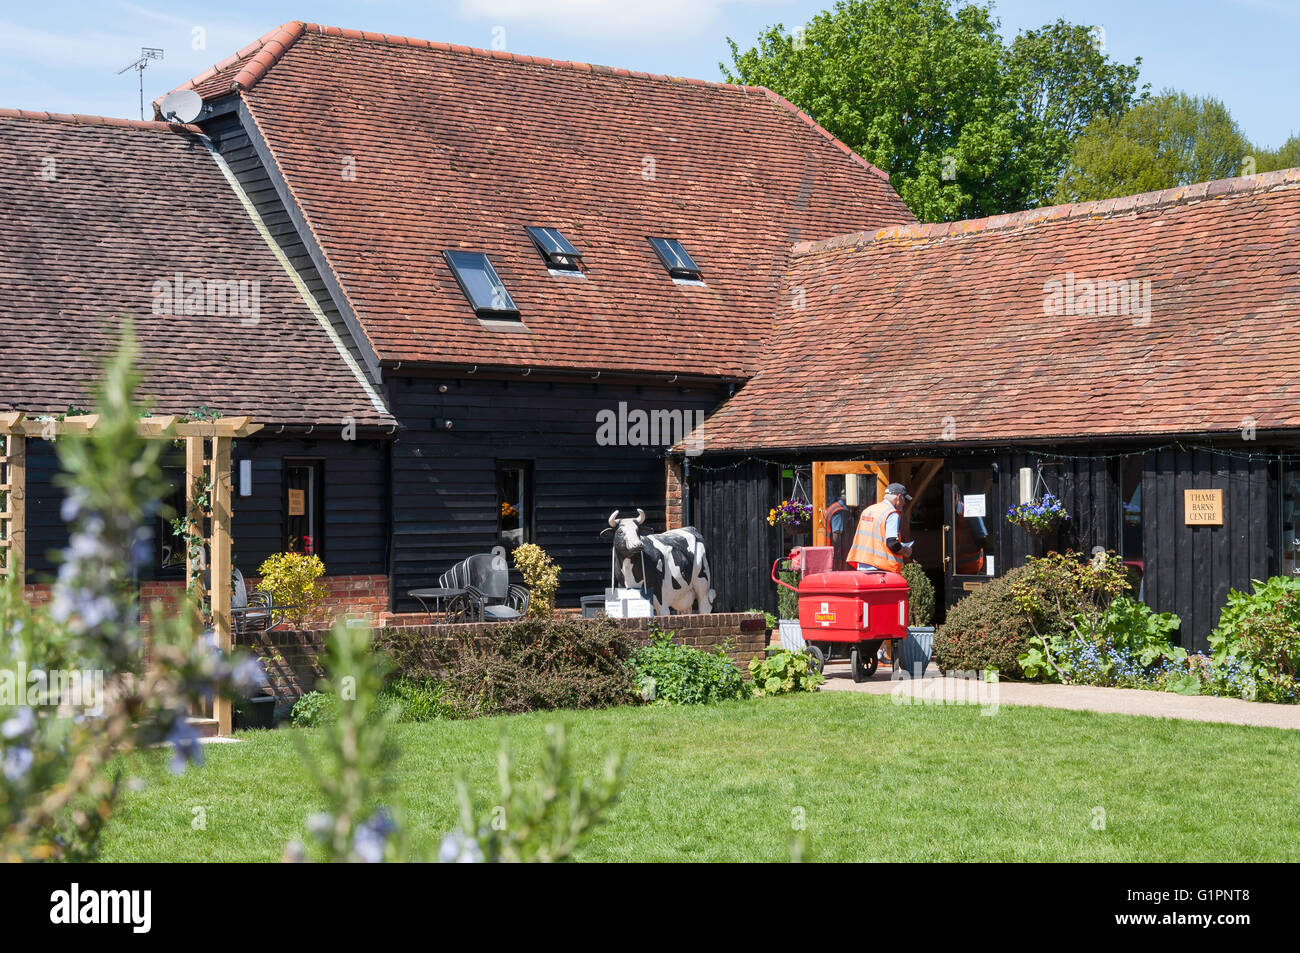 Thame Barns Centre, Church Road, Thame, Oxfordshire, England, United Kingdom - Stock Image